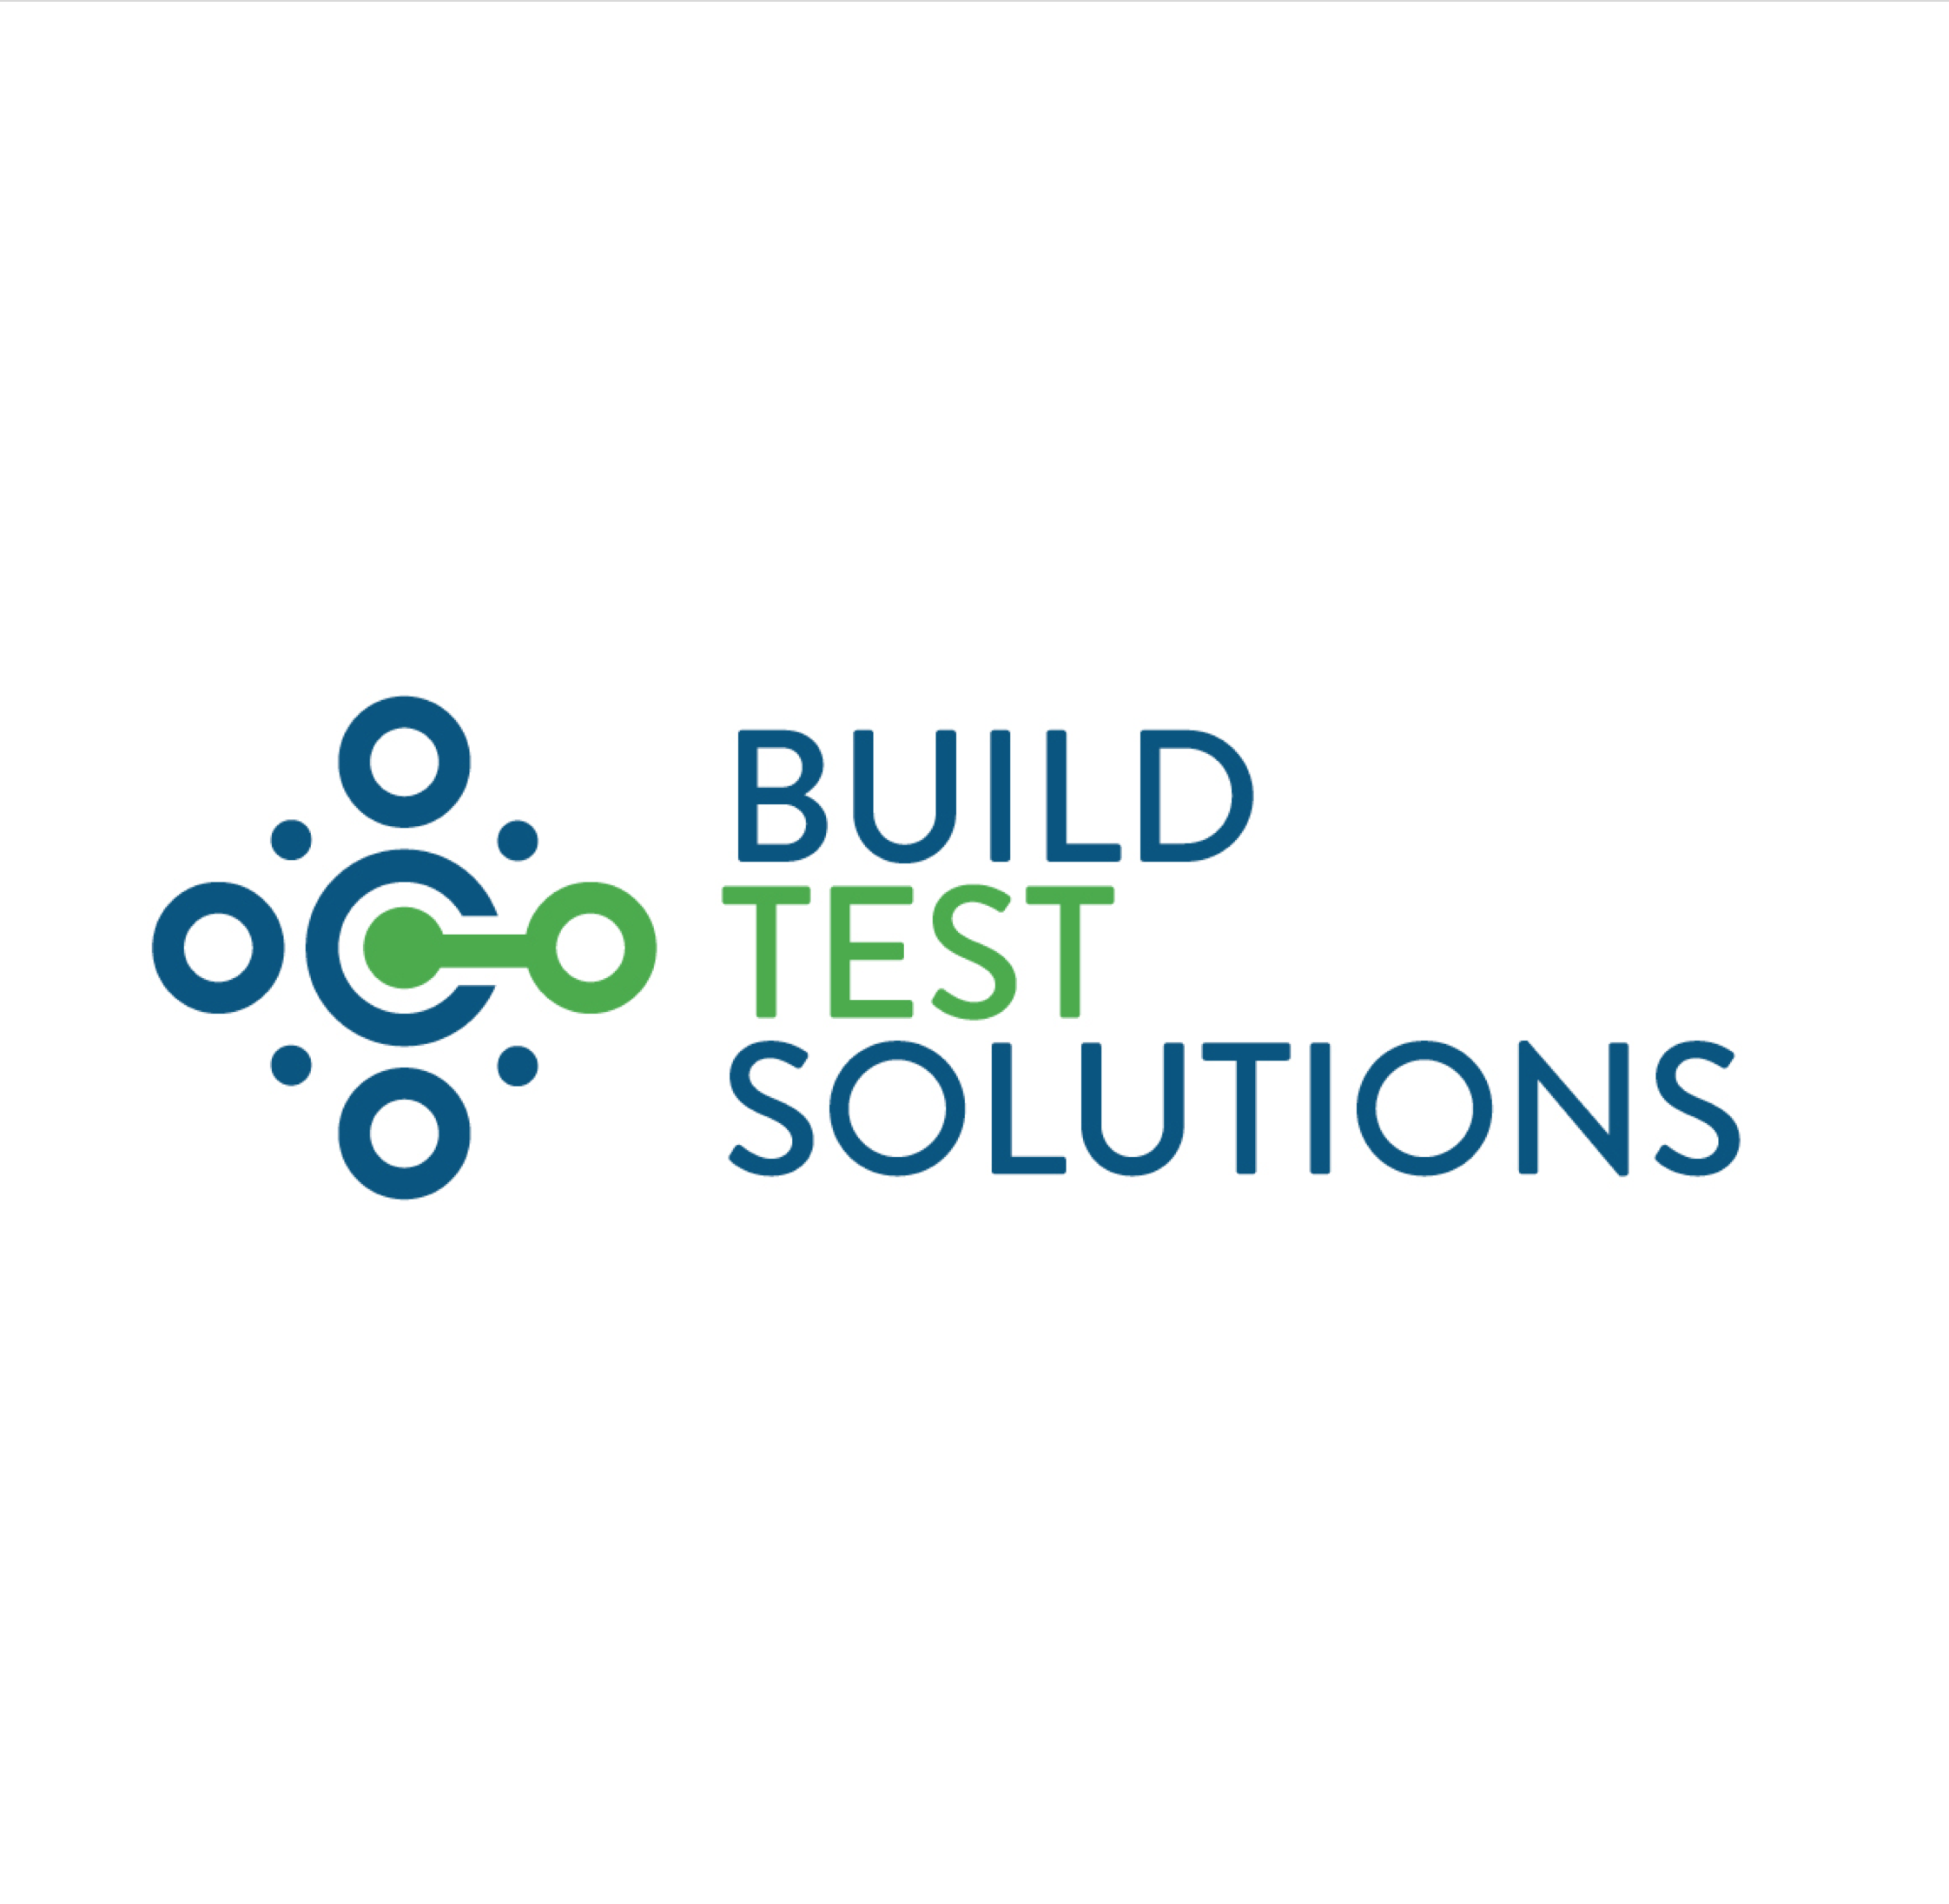 Build Test Solutions